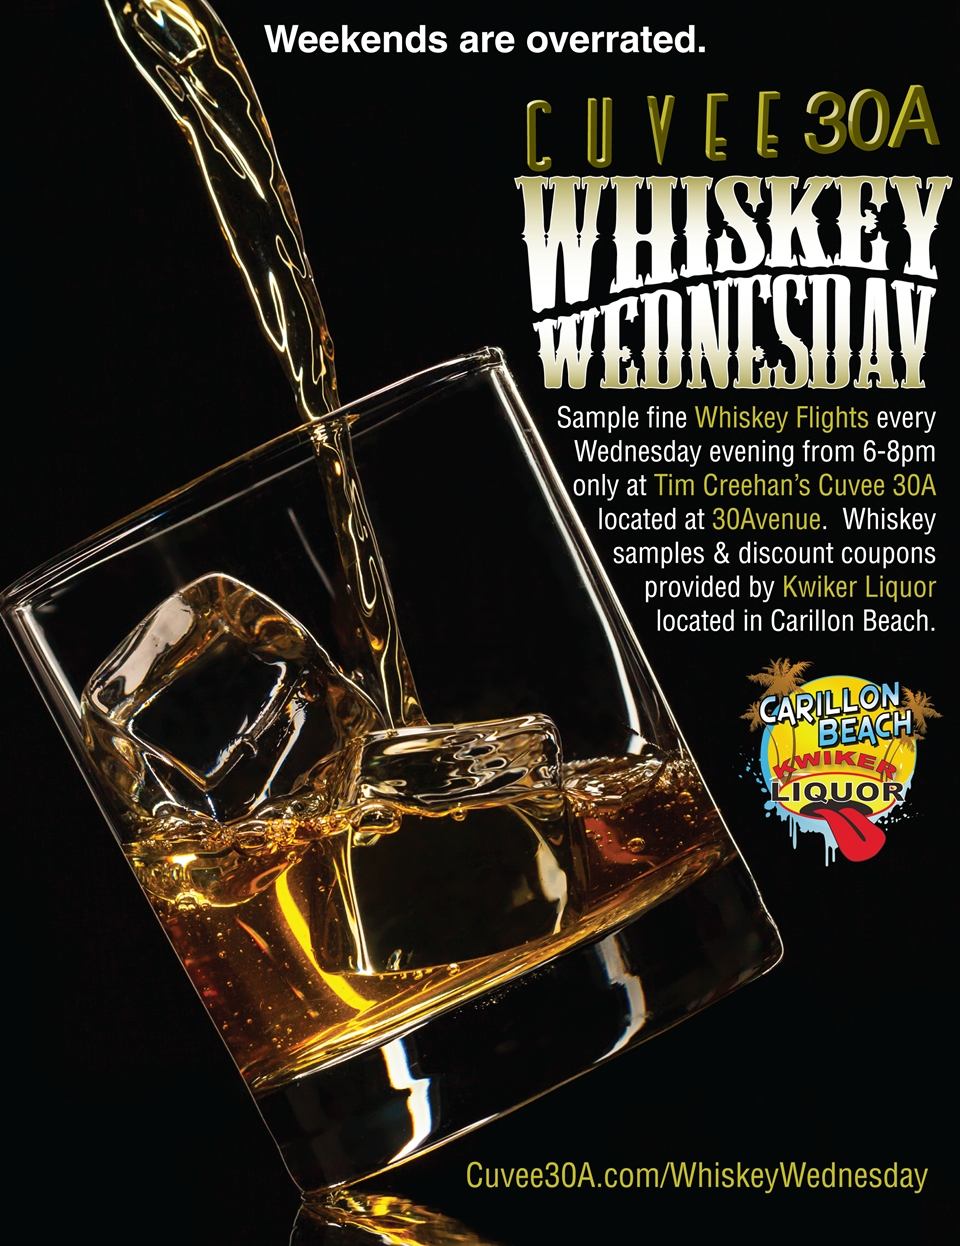 Whiskey Wednesday at Cuvee 30A in partnership with Kwiker Liquor at Carillon Beach